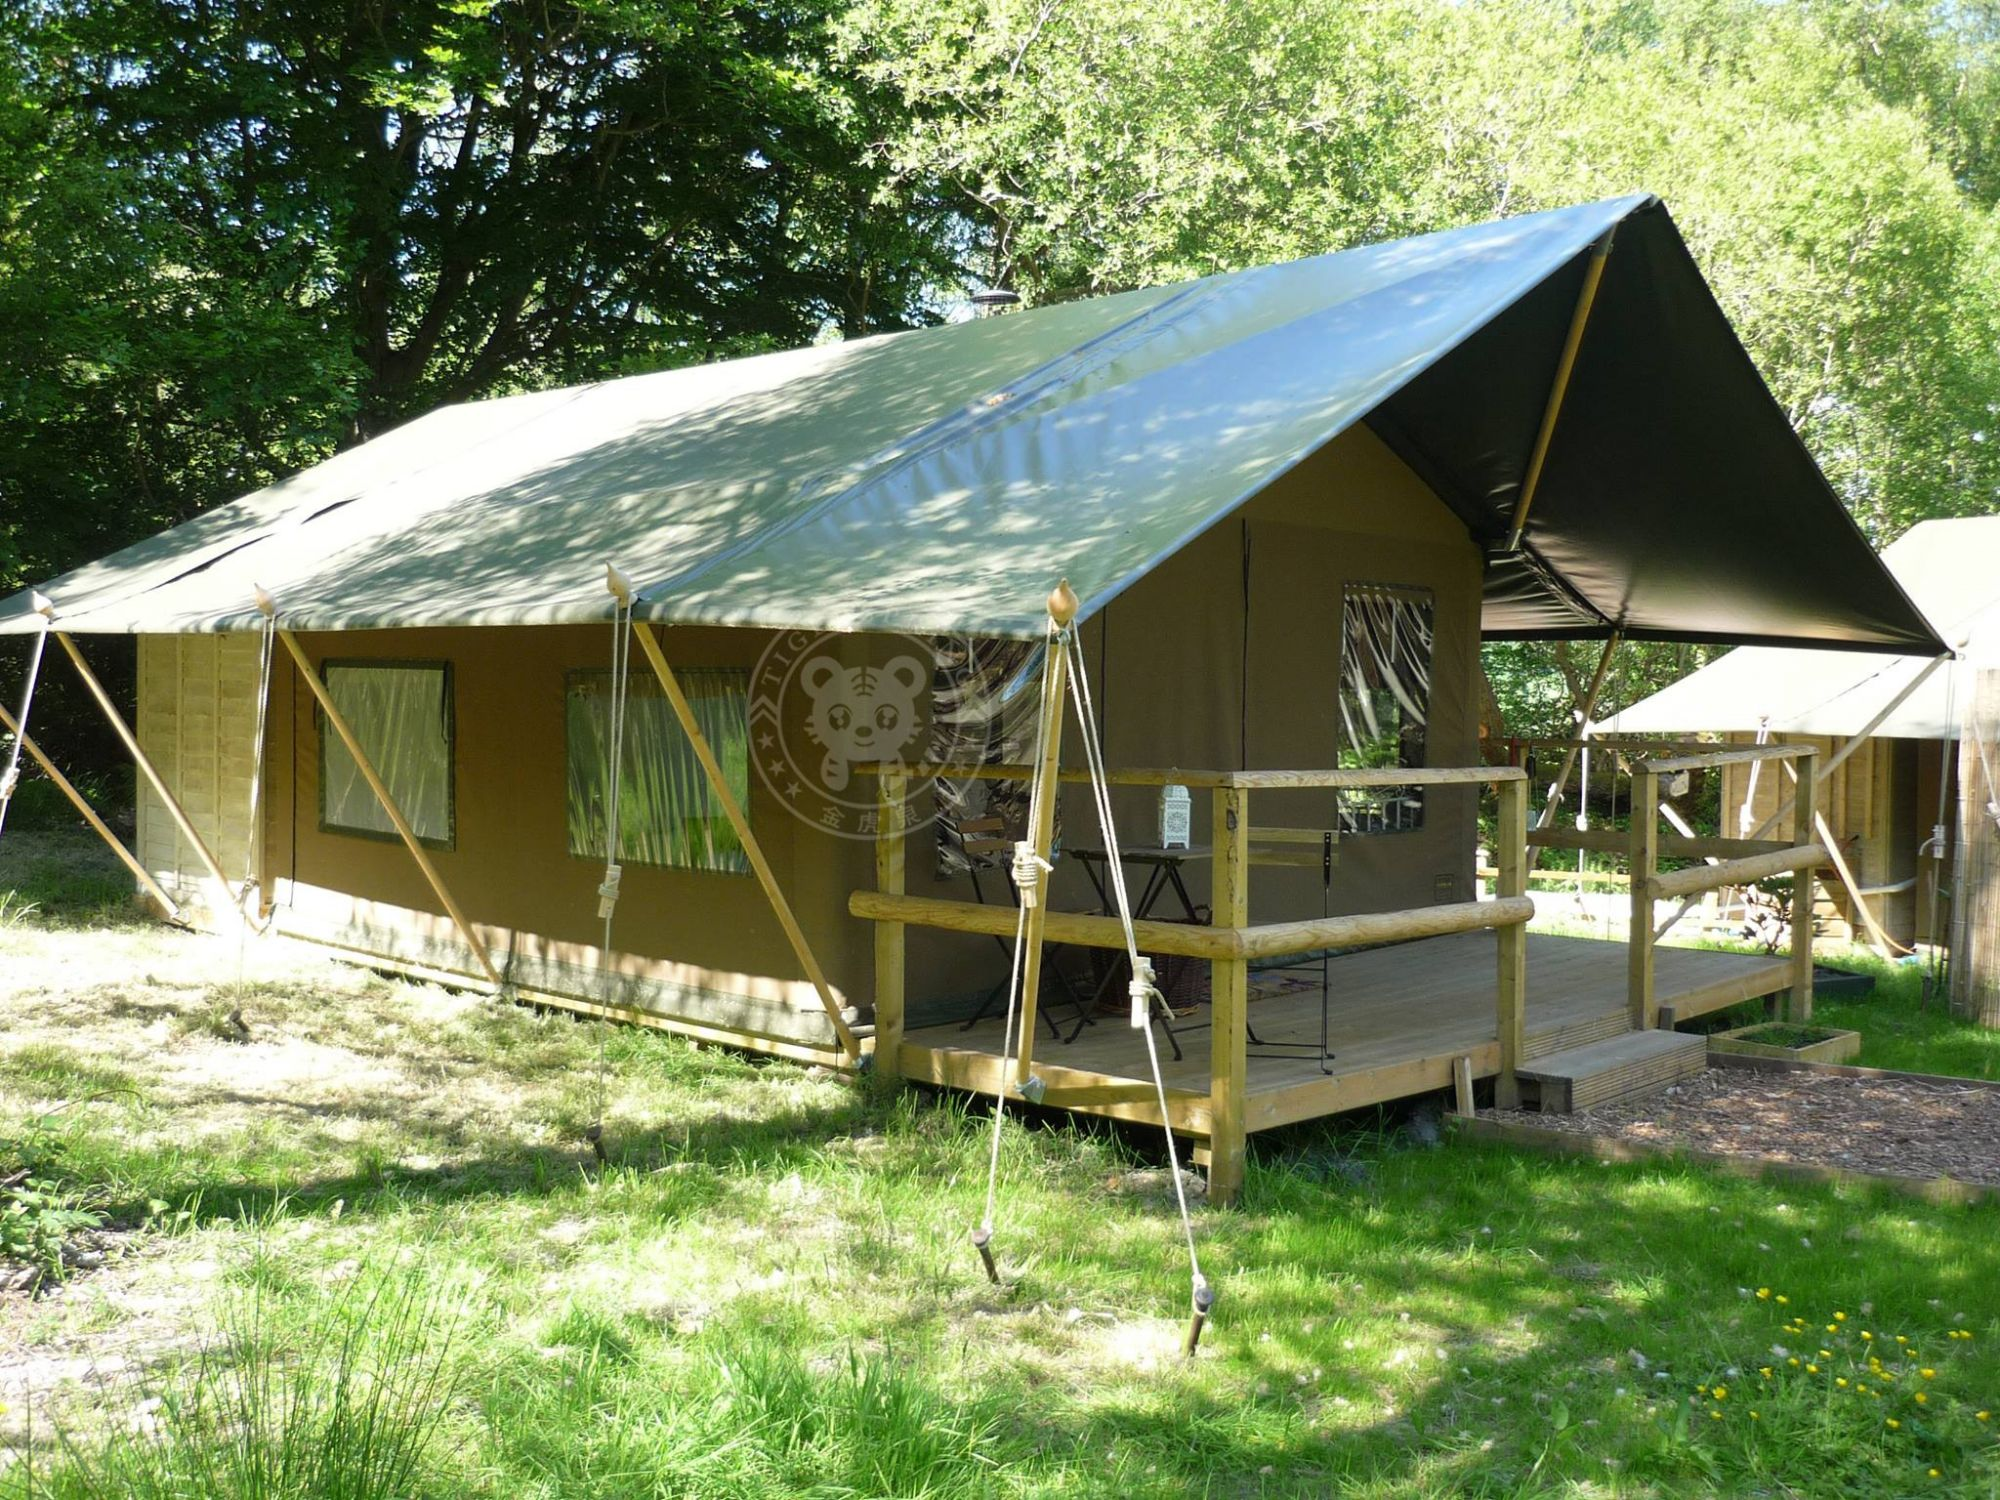 & canvas safari tent safari tent for sale